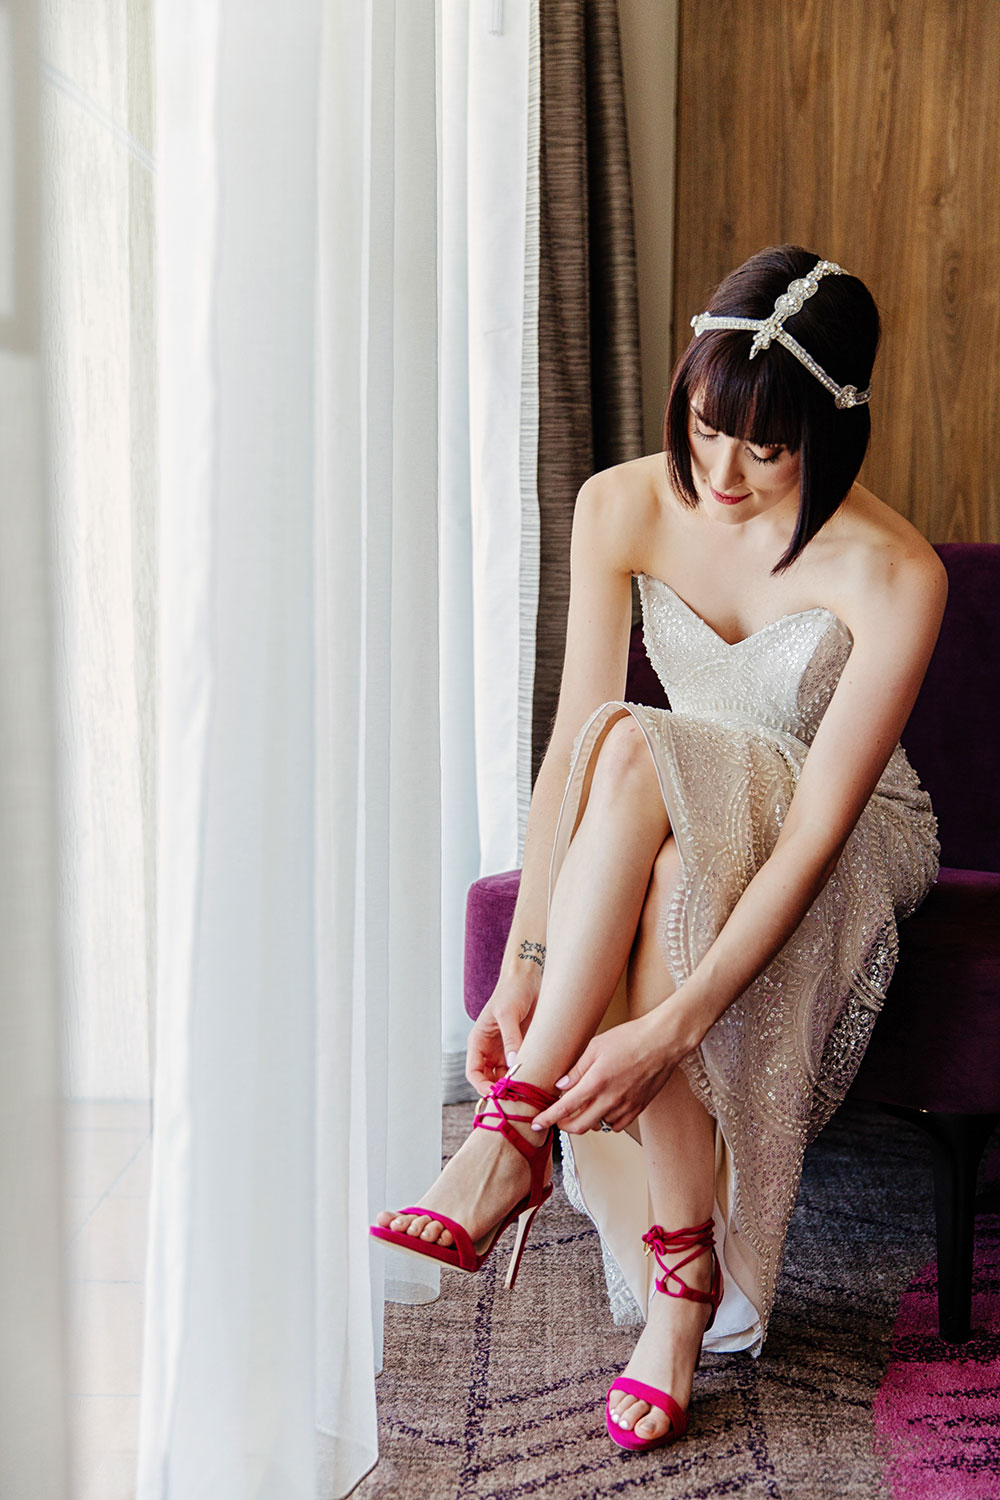 The bride lacing her shoes